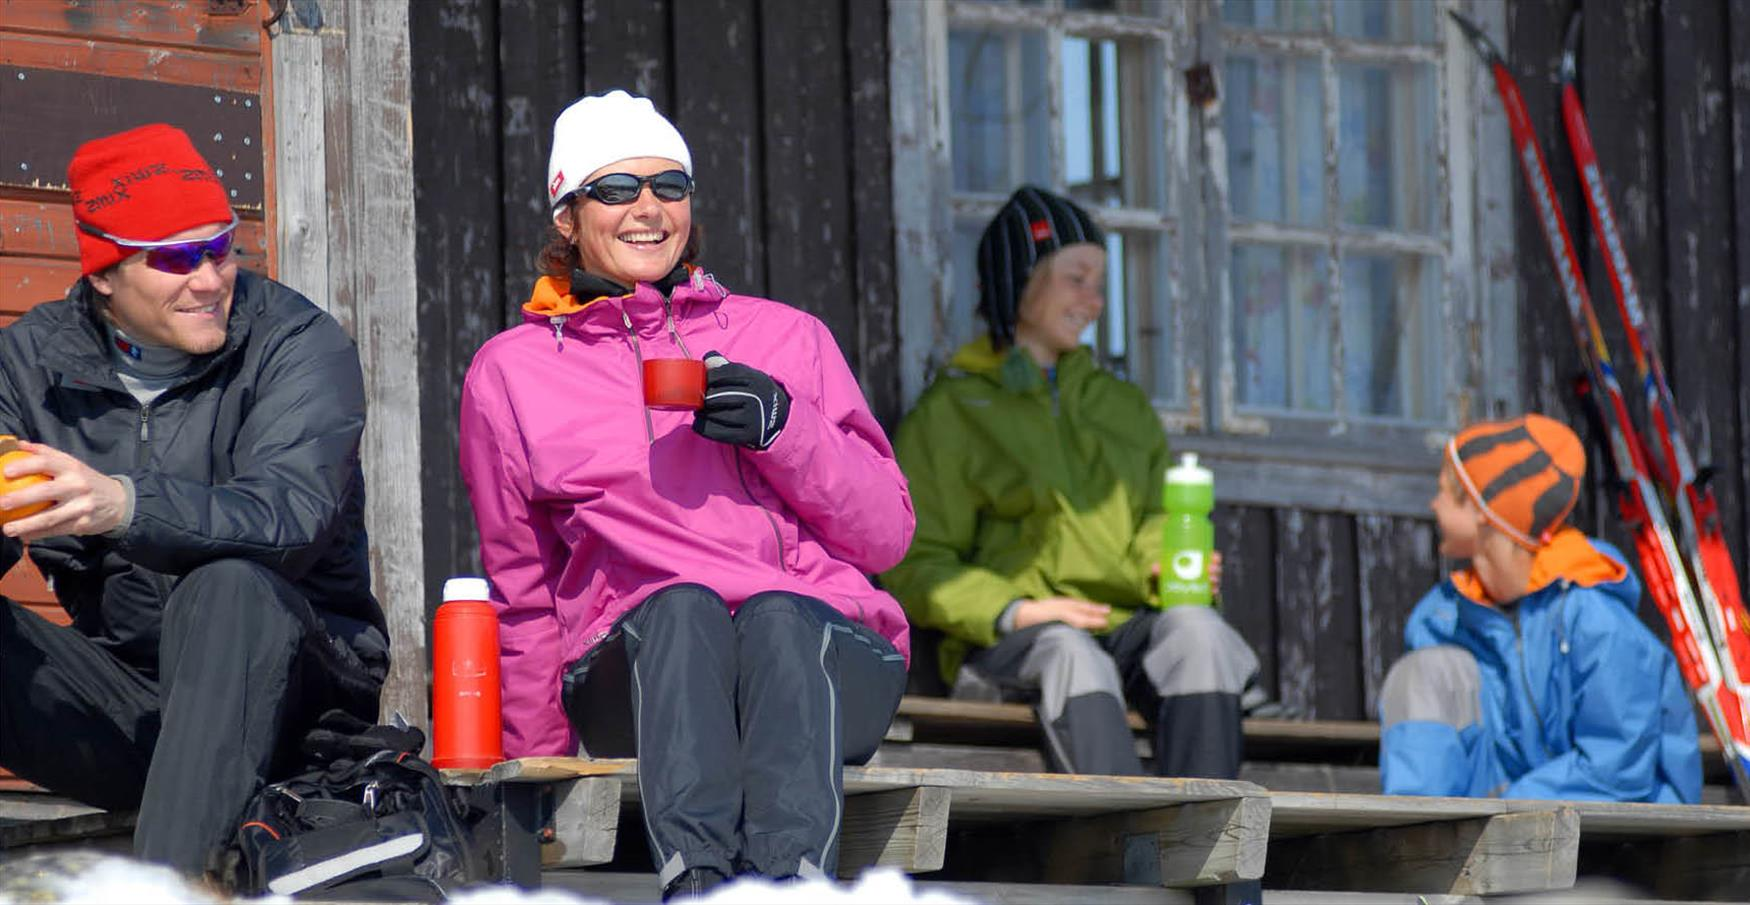 Taking a break on the cross-country skiing trip